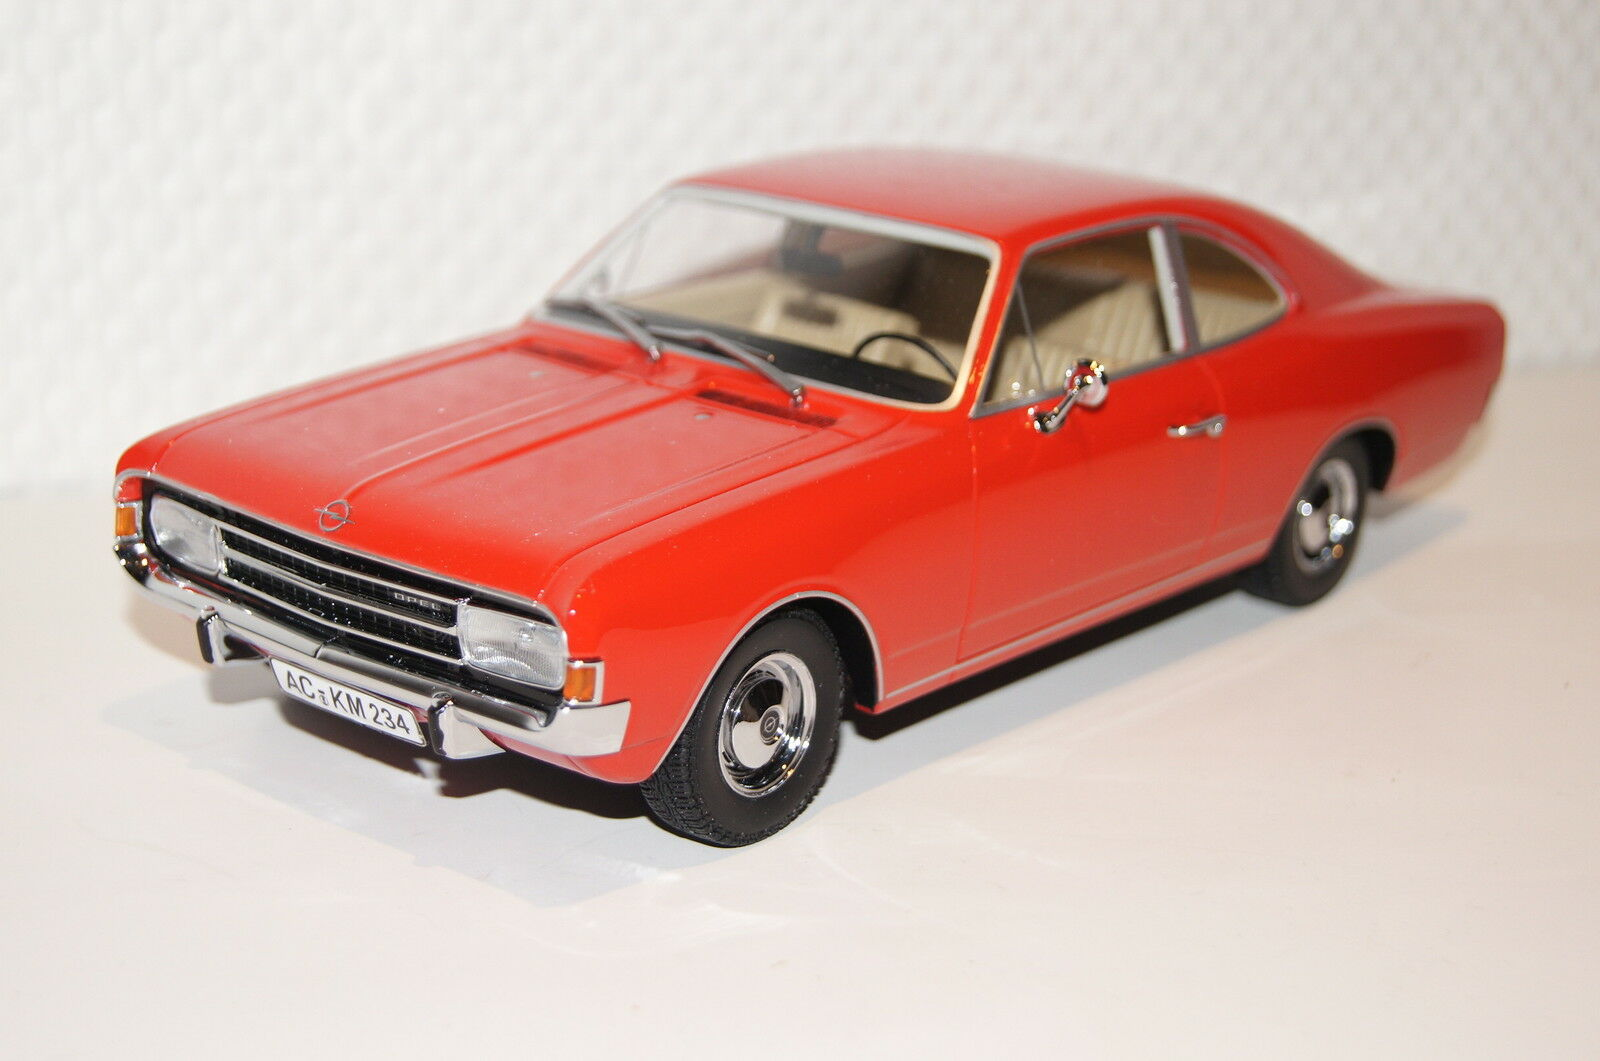 Opel Rekord C Coupe 1966 rosso resin 1 18 Minichamps nuevo + embalaje orig. 107047020